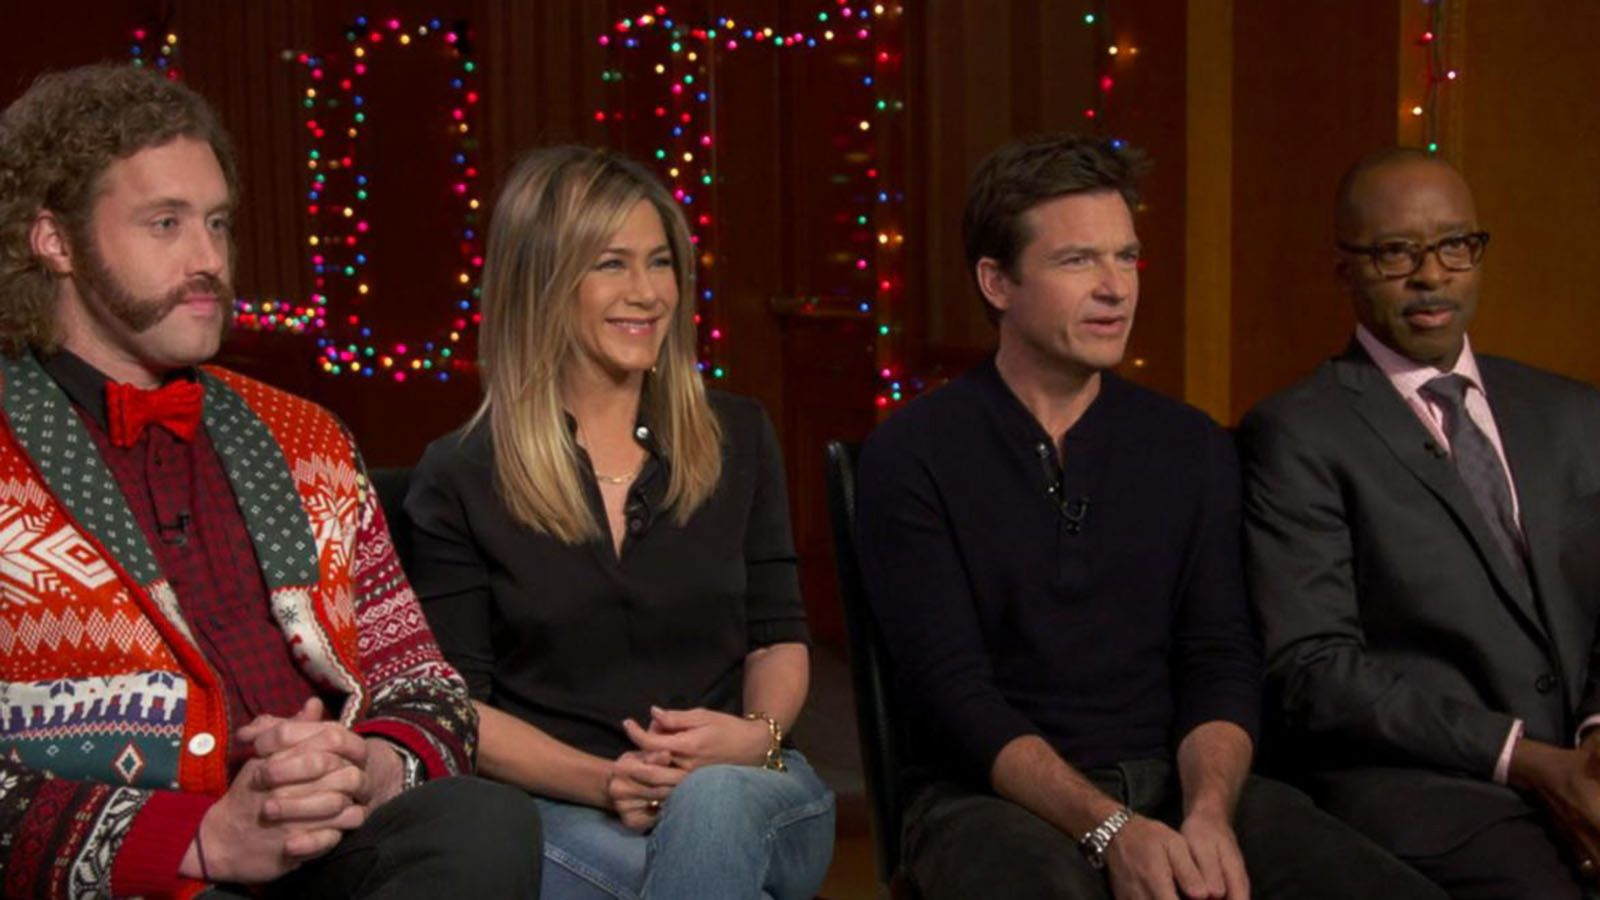 VIDEO: 'GMA' Hot List: Cast of 'Office Christmas Party' Gets Candid